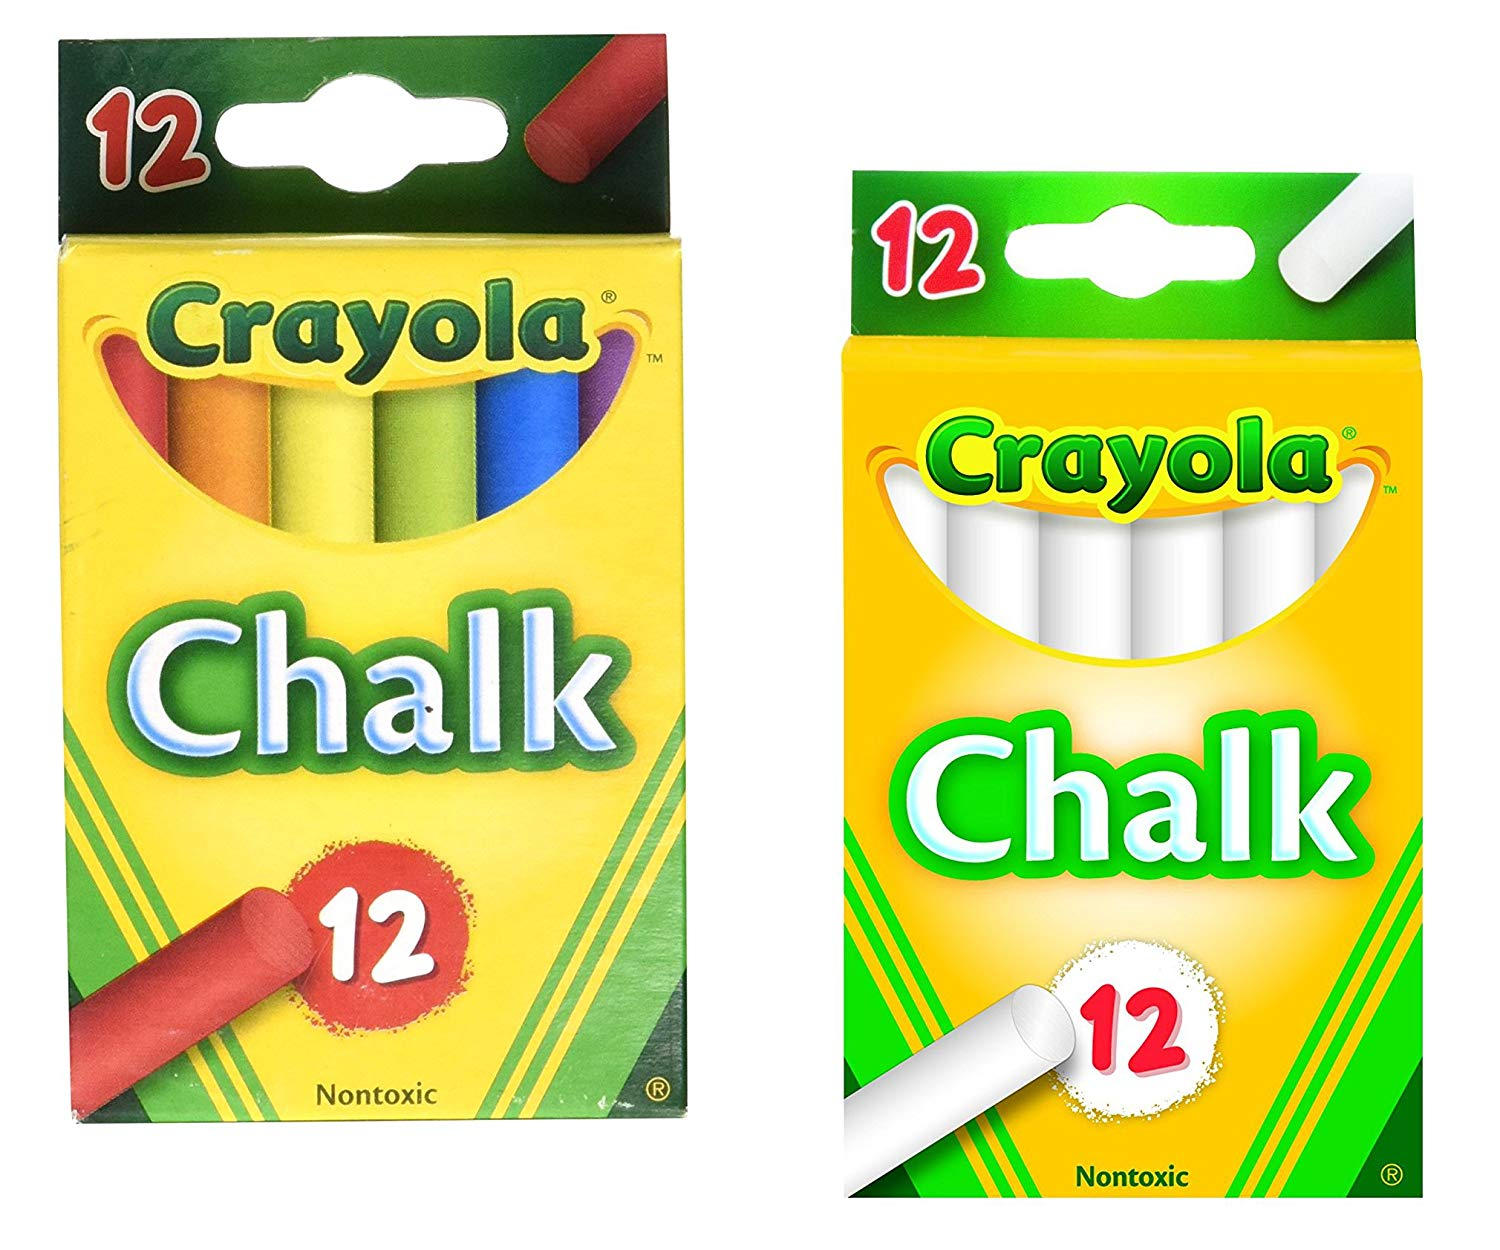 Crayola White Chalk (12 Count) Bundled with Crayola Color Chalk (12 Count)